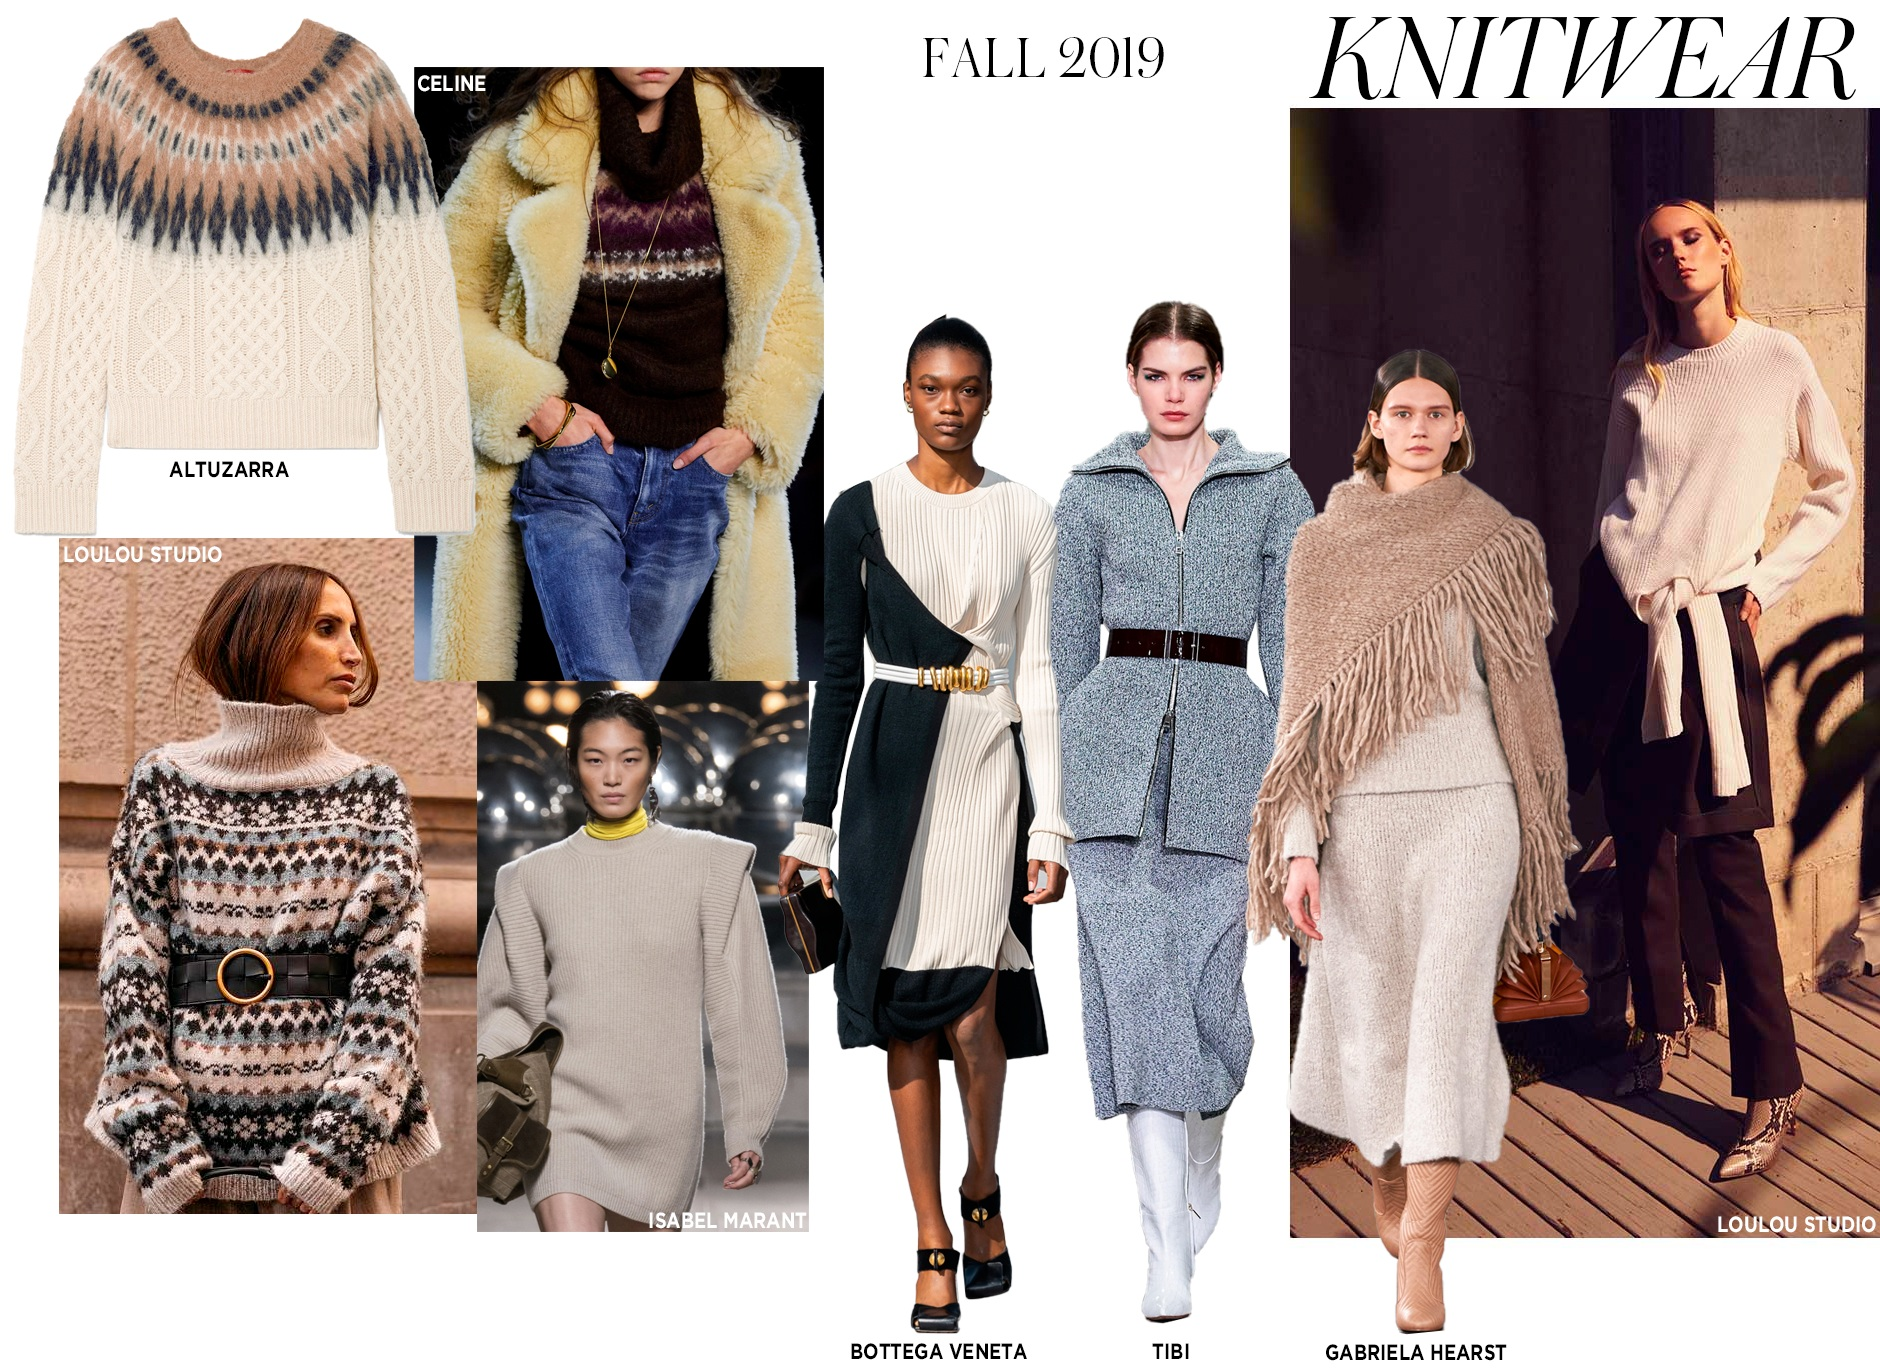 Neiman Marcus  is in step with this season's sweater trends.